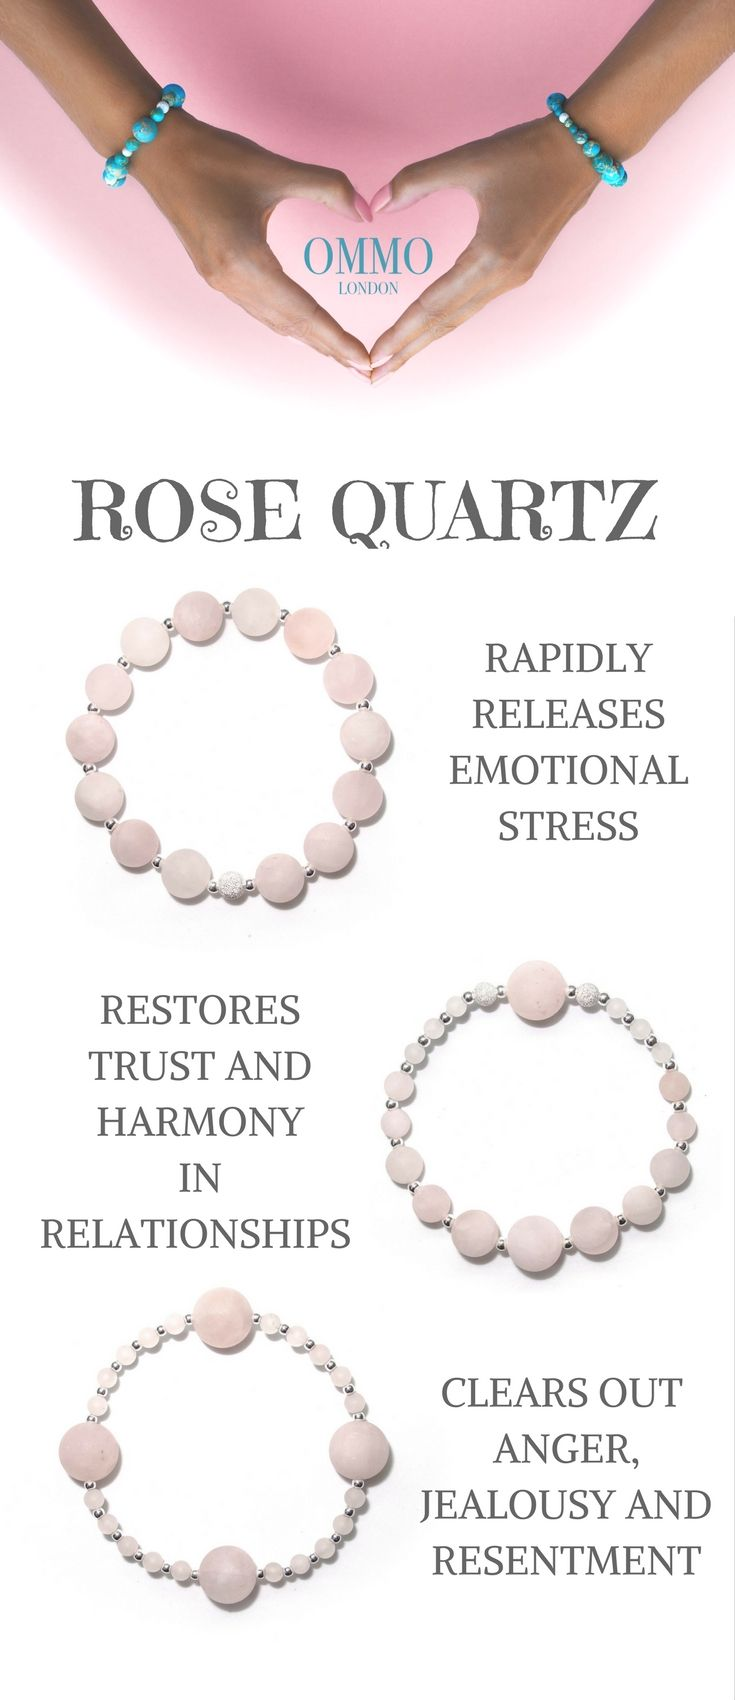 Rose Quartz And Sterling Silver Bracelets Jewellery With A